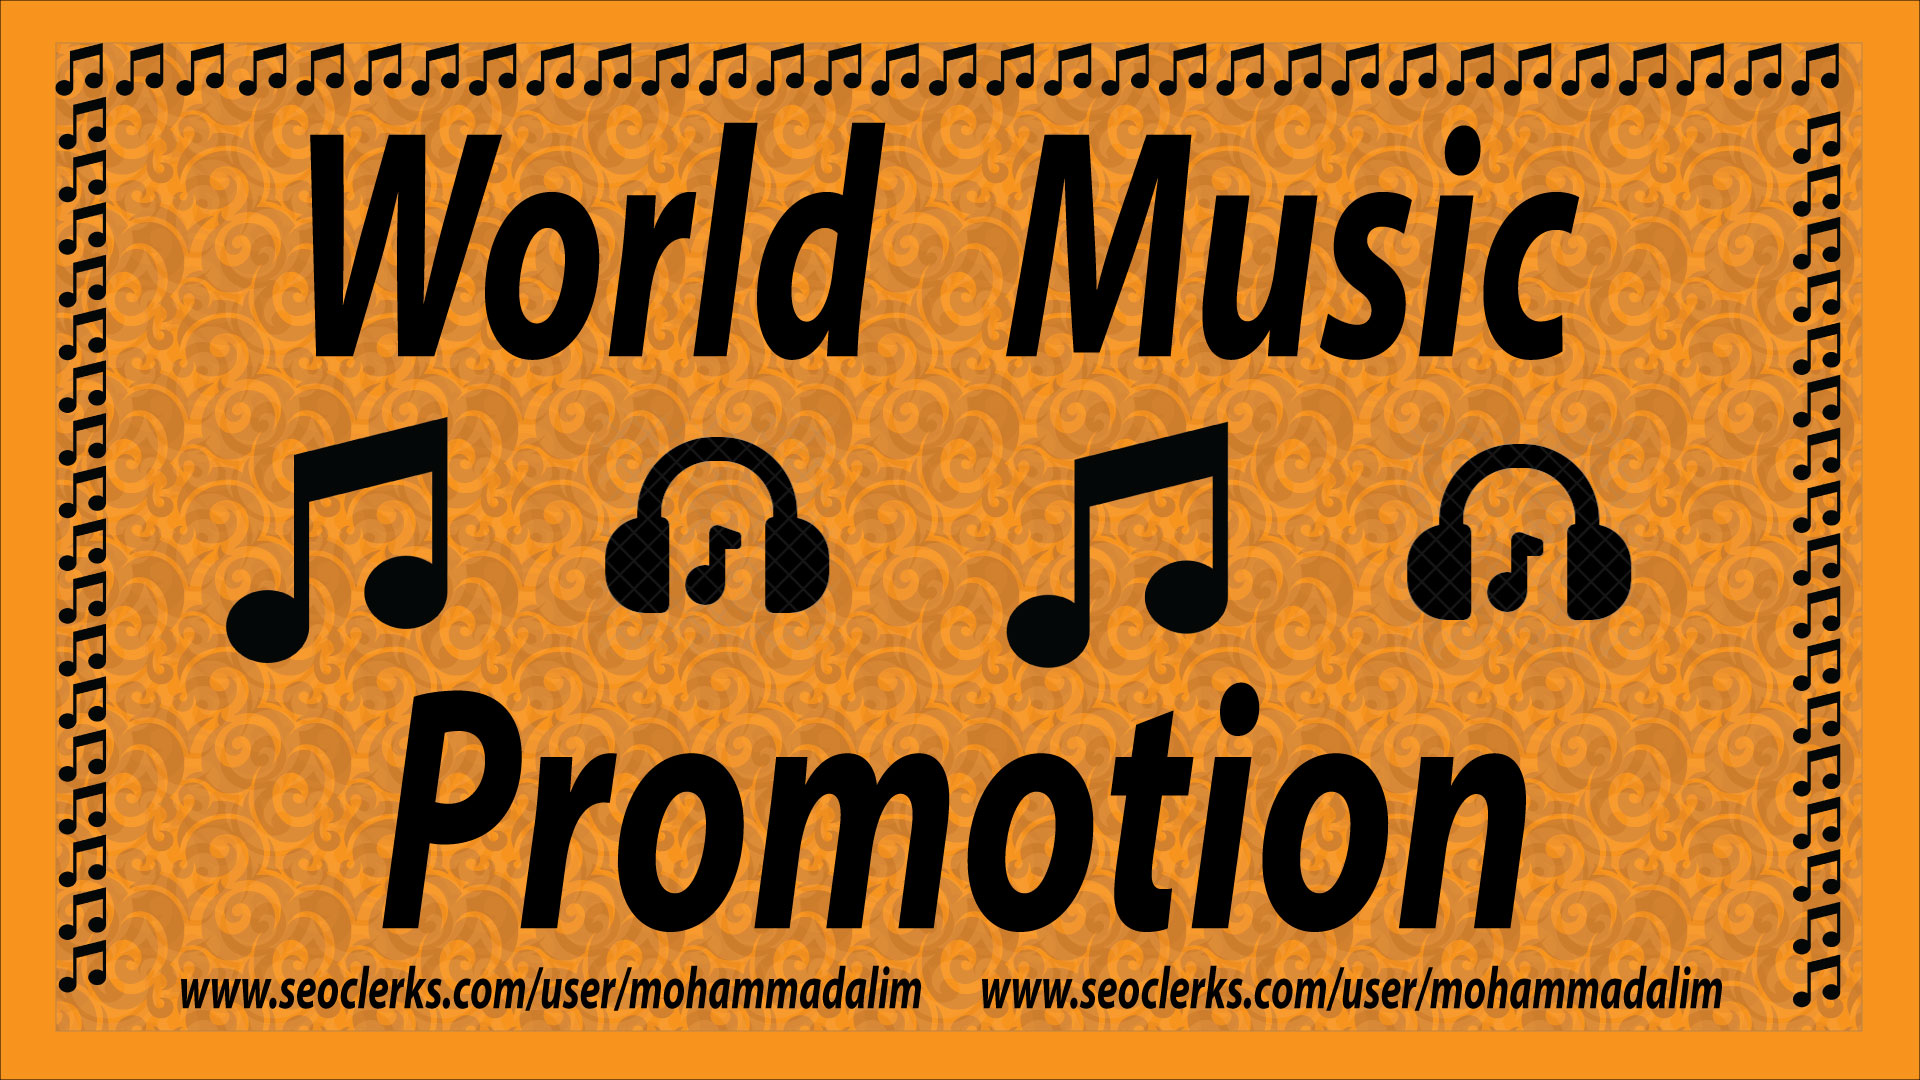 Real World Music Promotion And Marketing